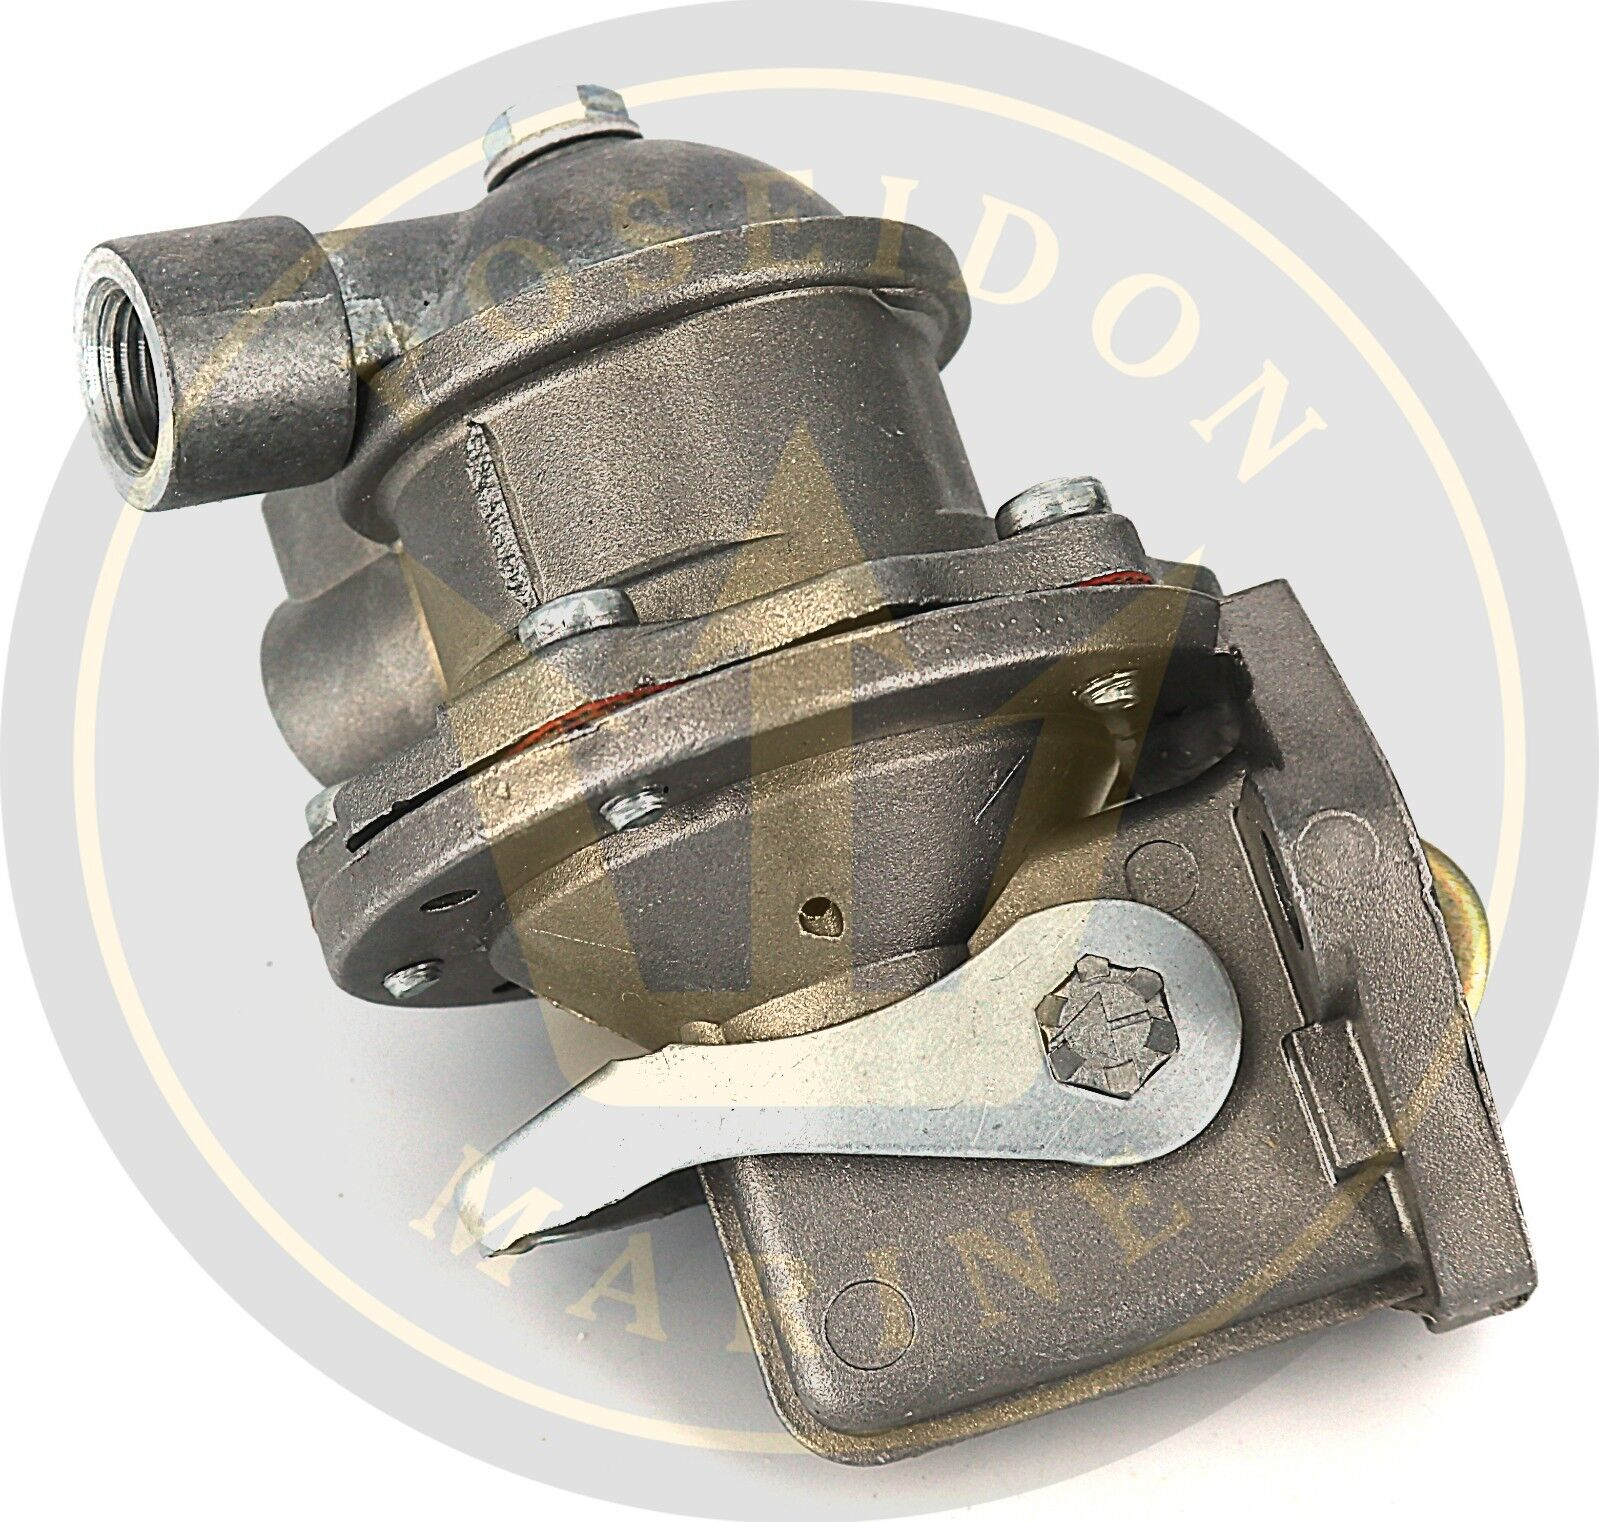 Fuel pump for Lister Peter SR series RO: 25061552 351-12151 352-83780